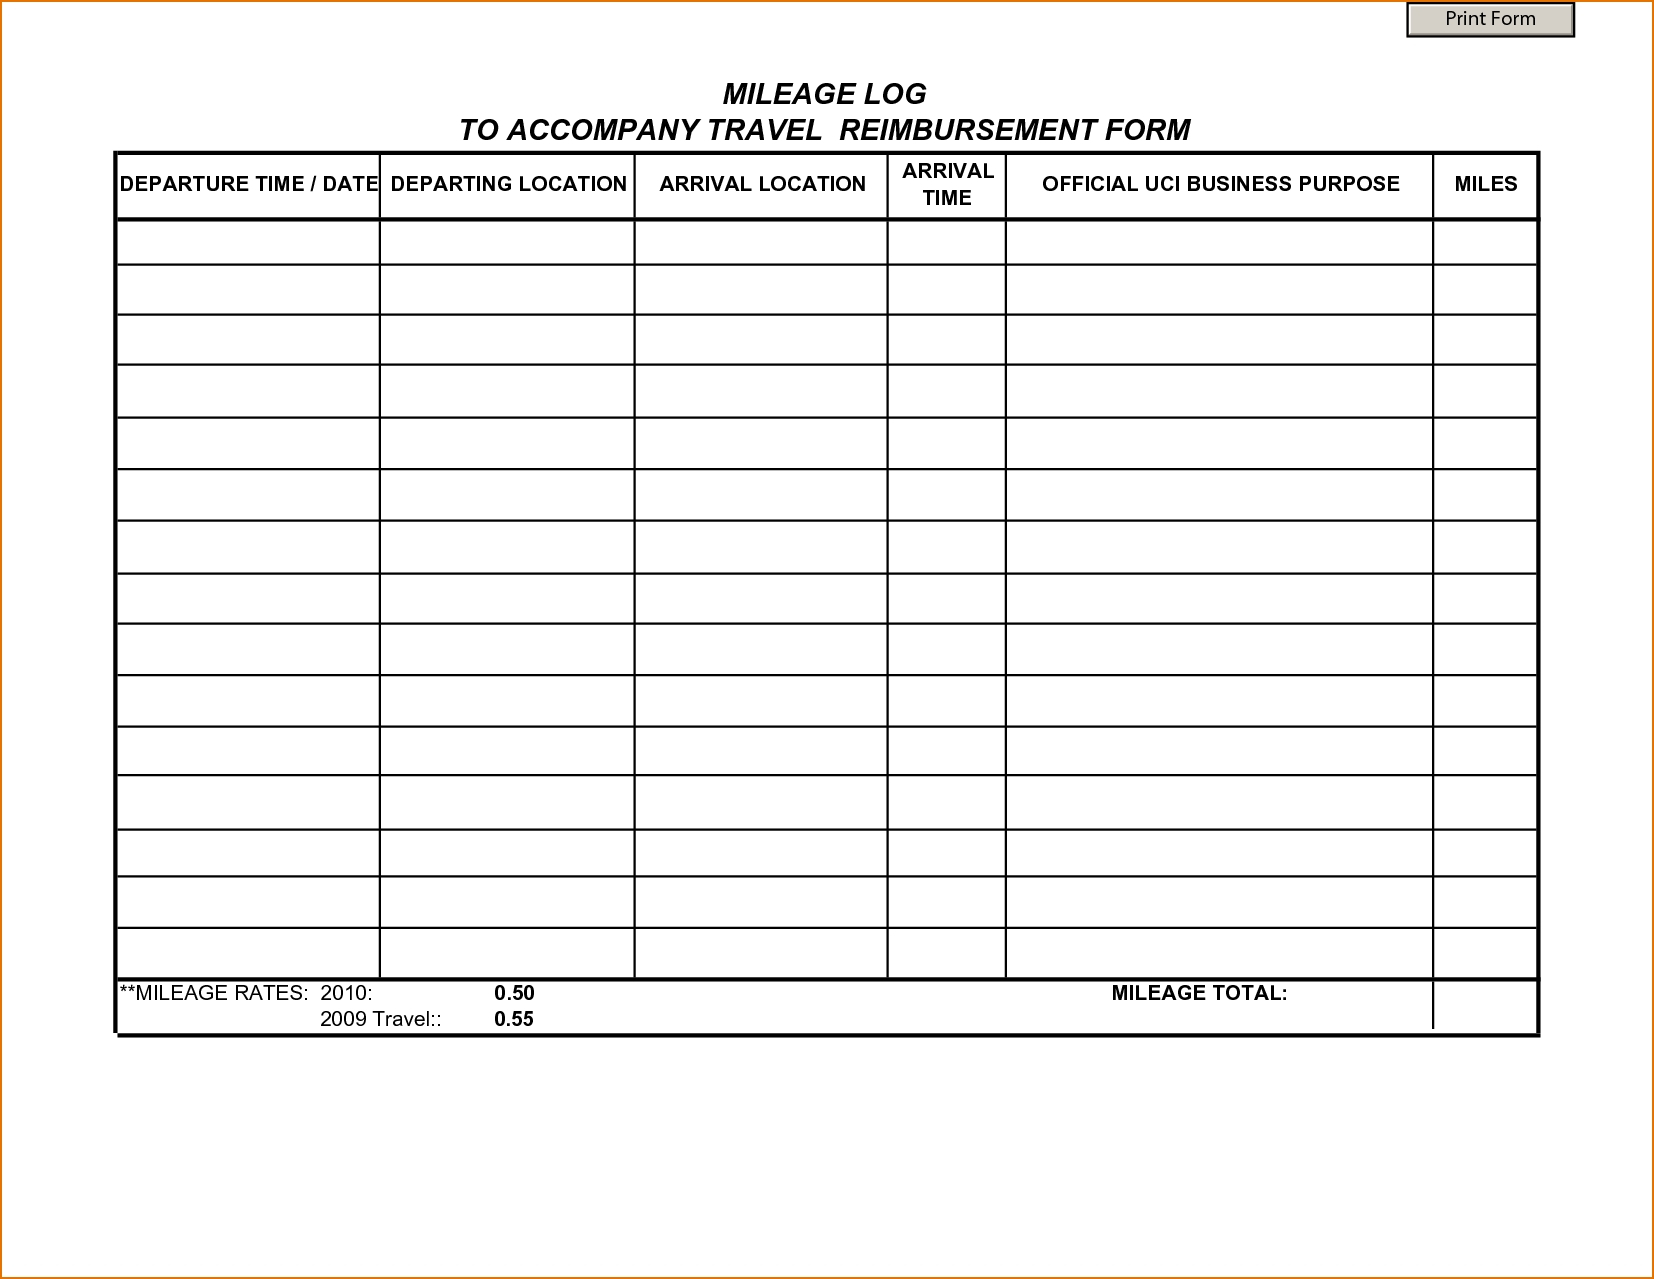 mileage expense report spreadsheet with form templates